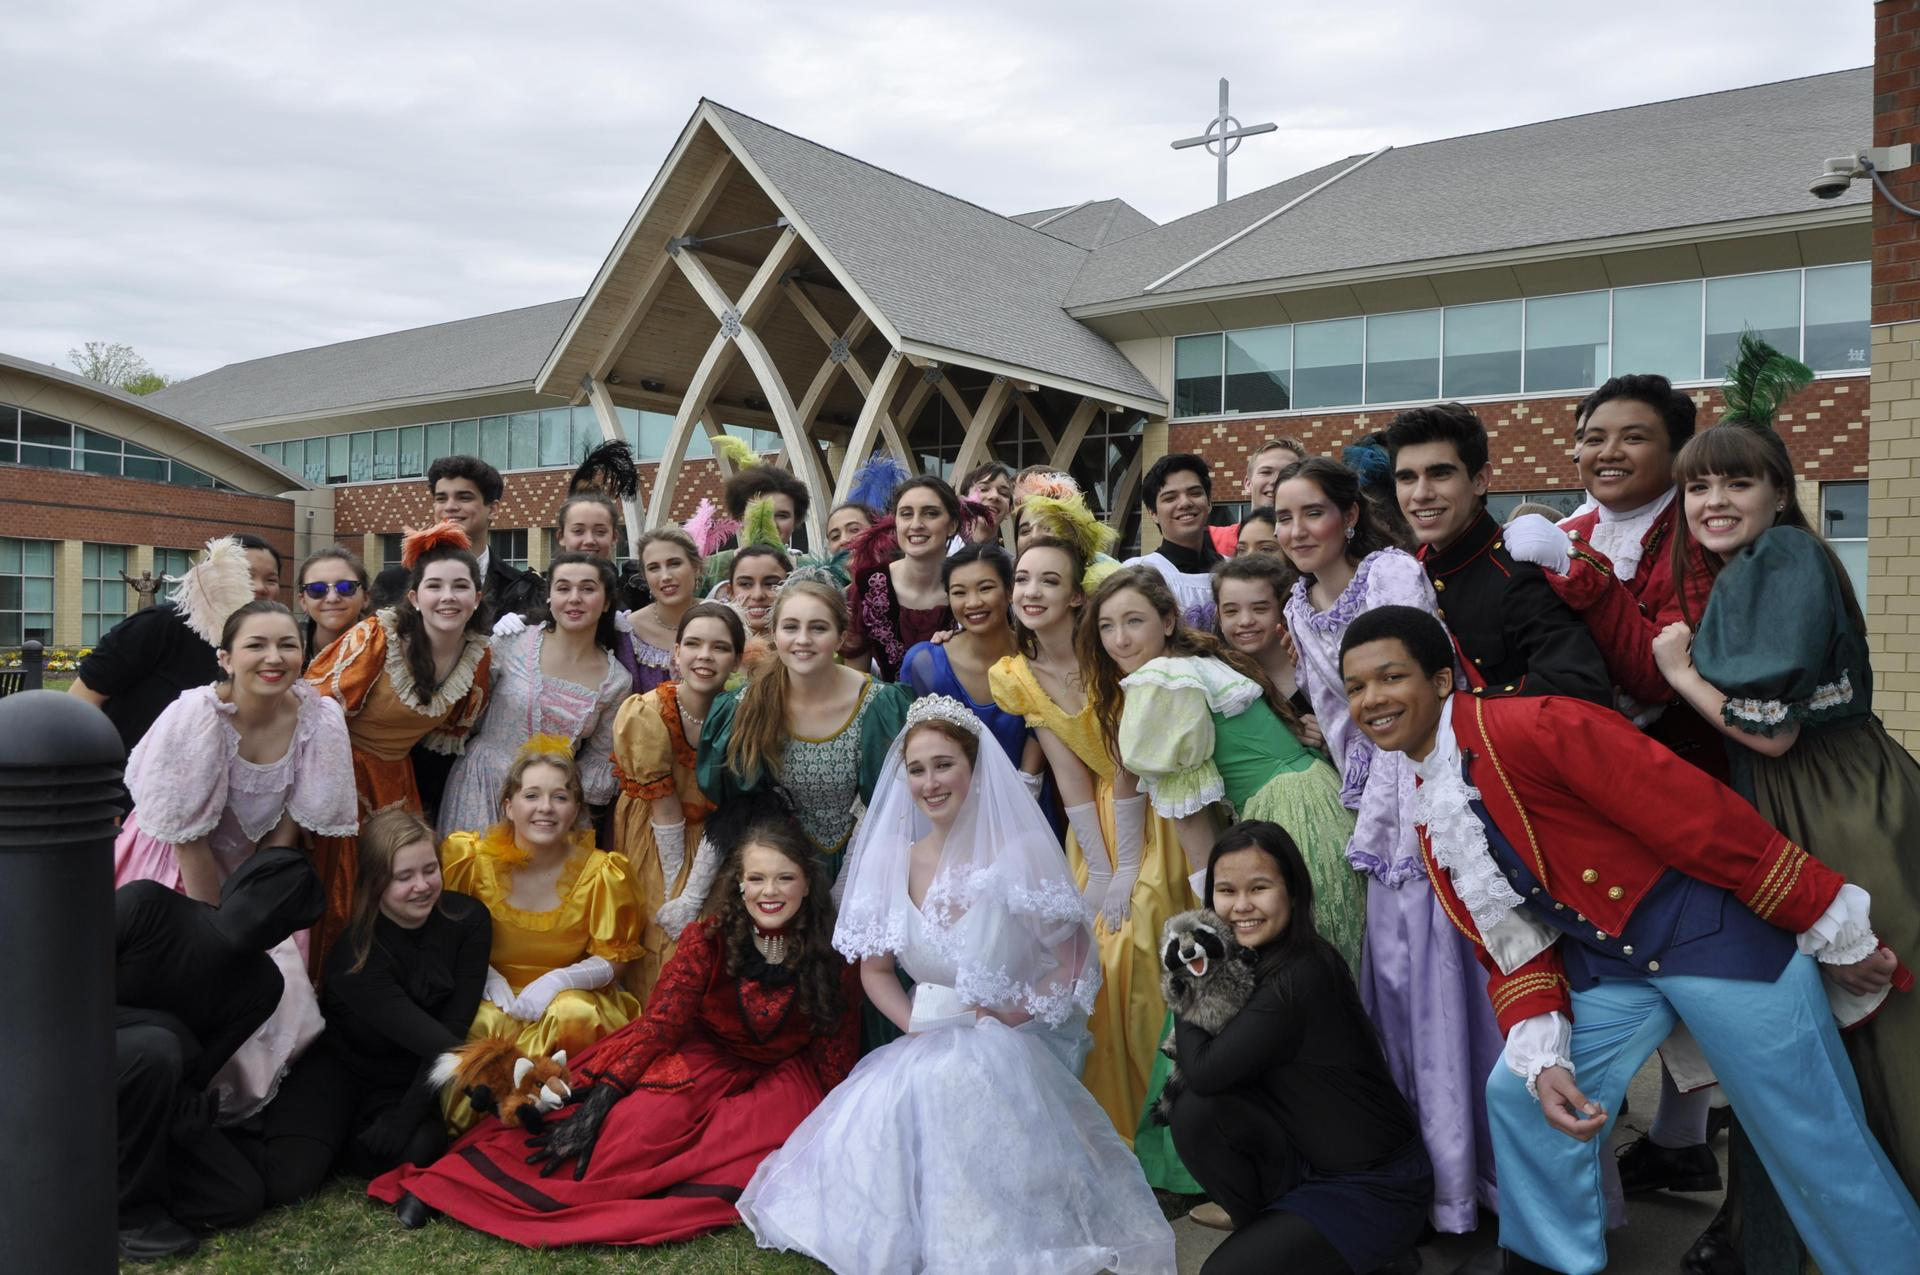 The cast of the Glass Slipper